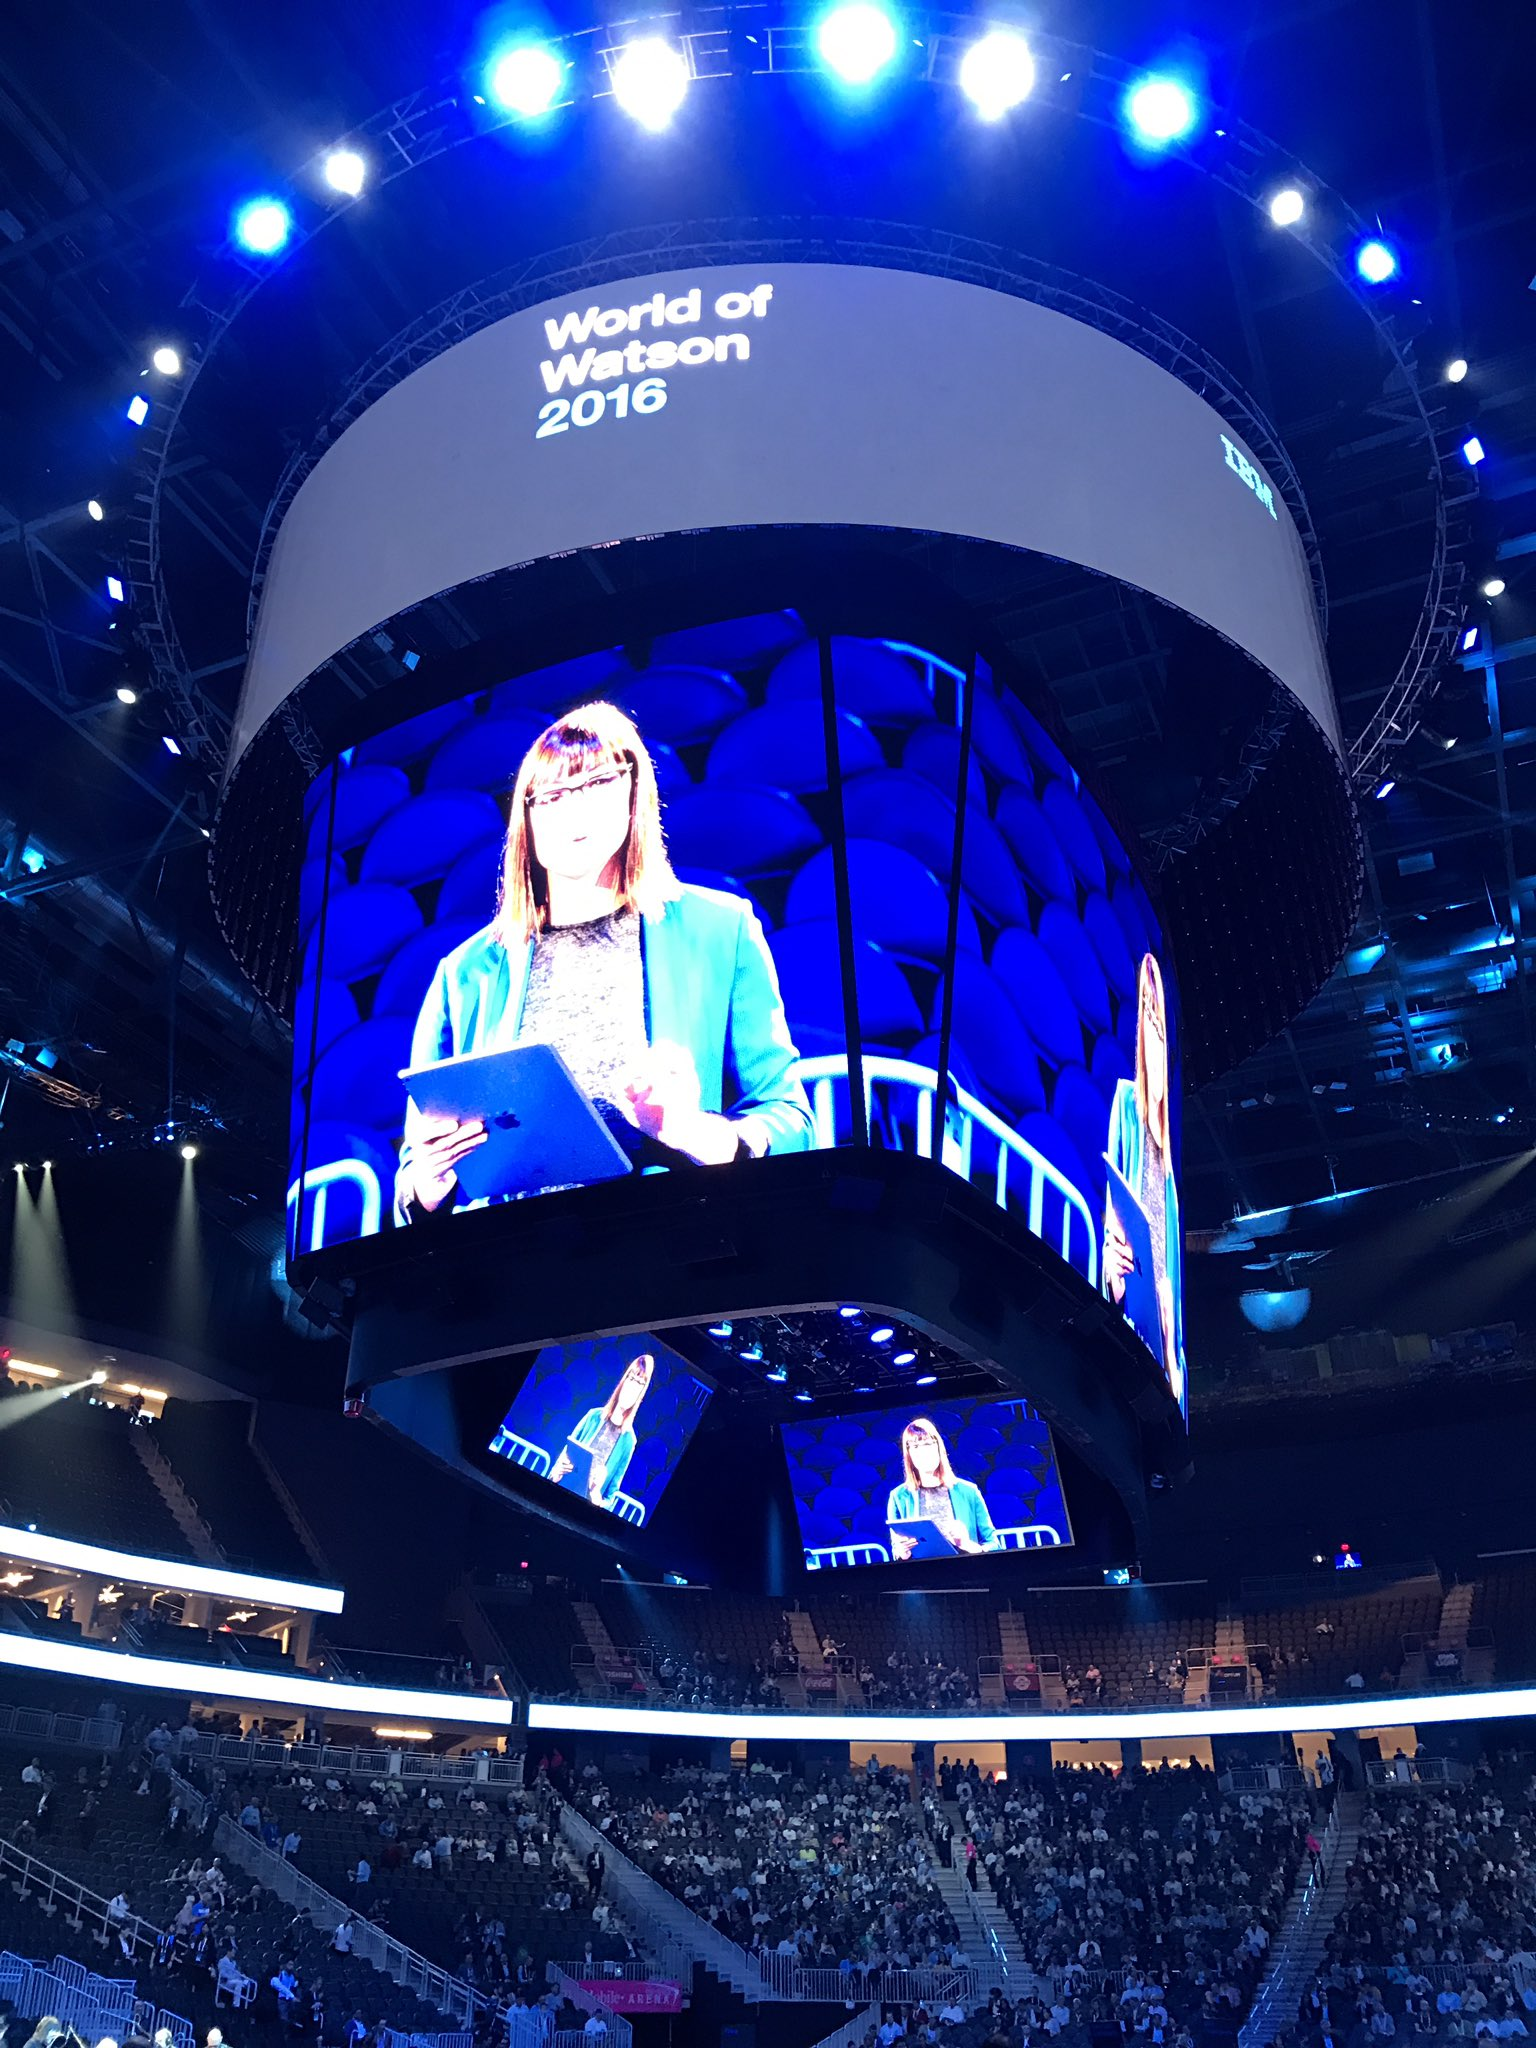 Arriving at the huge @TMobileArena for the big #ibmwow general session with @tomfriedman, @davidwkenny and a cast of dozens. #ai #cio https://t.co/IfG9Rsntiw